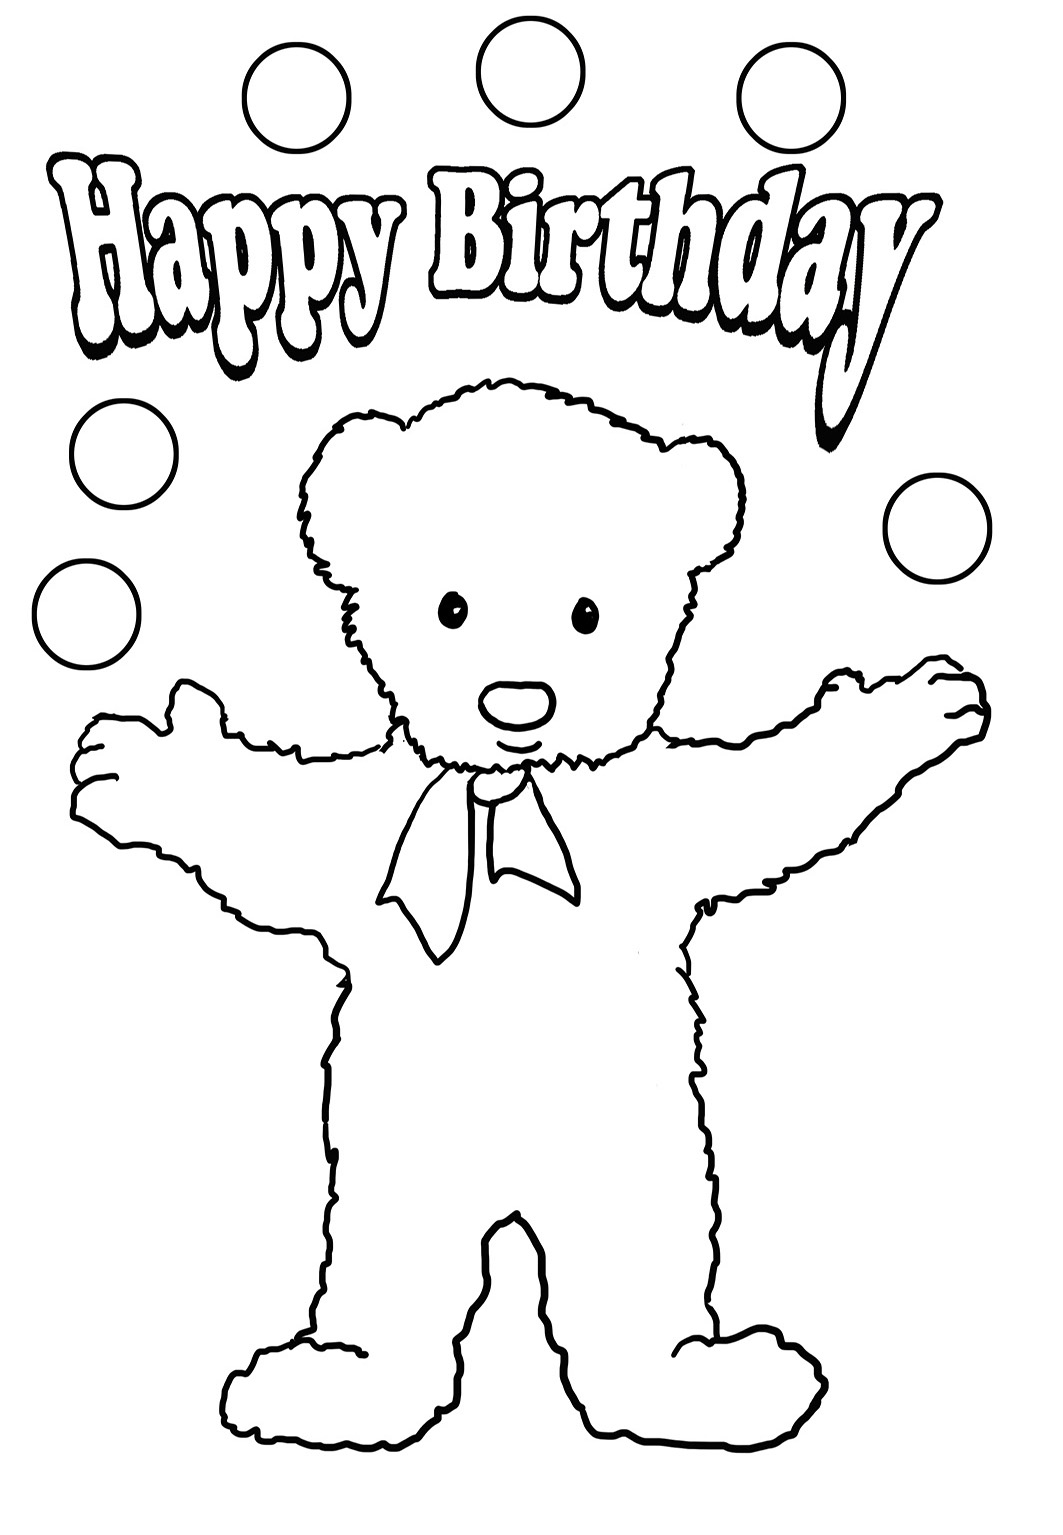 Pokemon happy birthday coloring pages - Happy Birthday Dinosaur Coloring Pages Coloring Pages To Print Birthday Tedd Bear